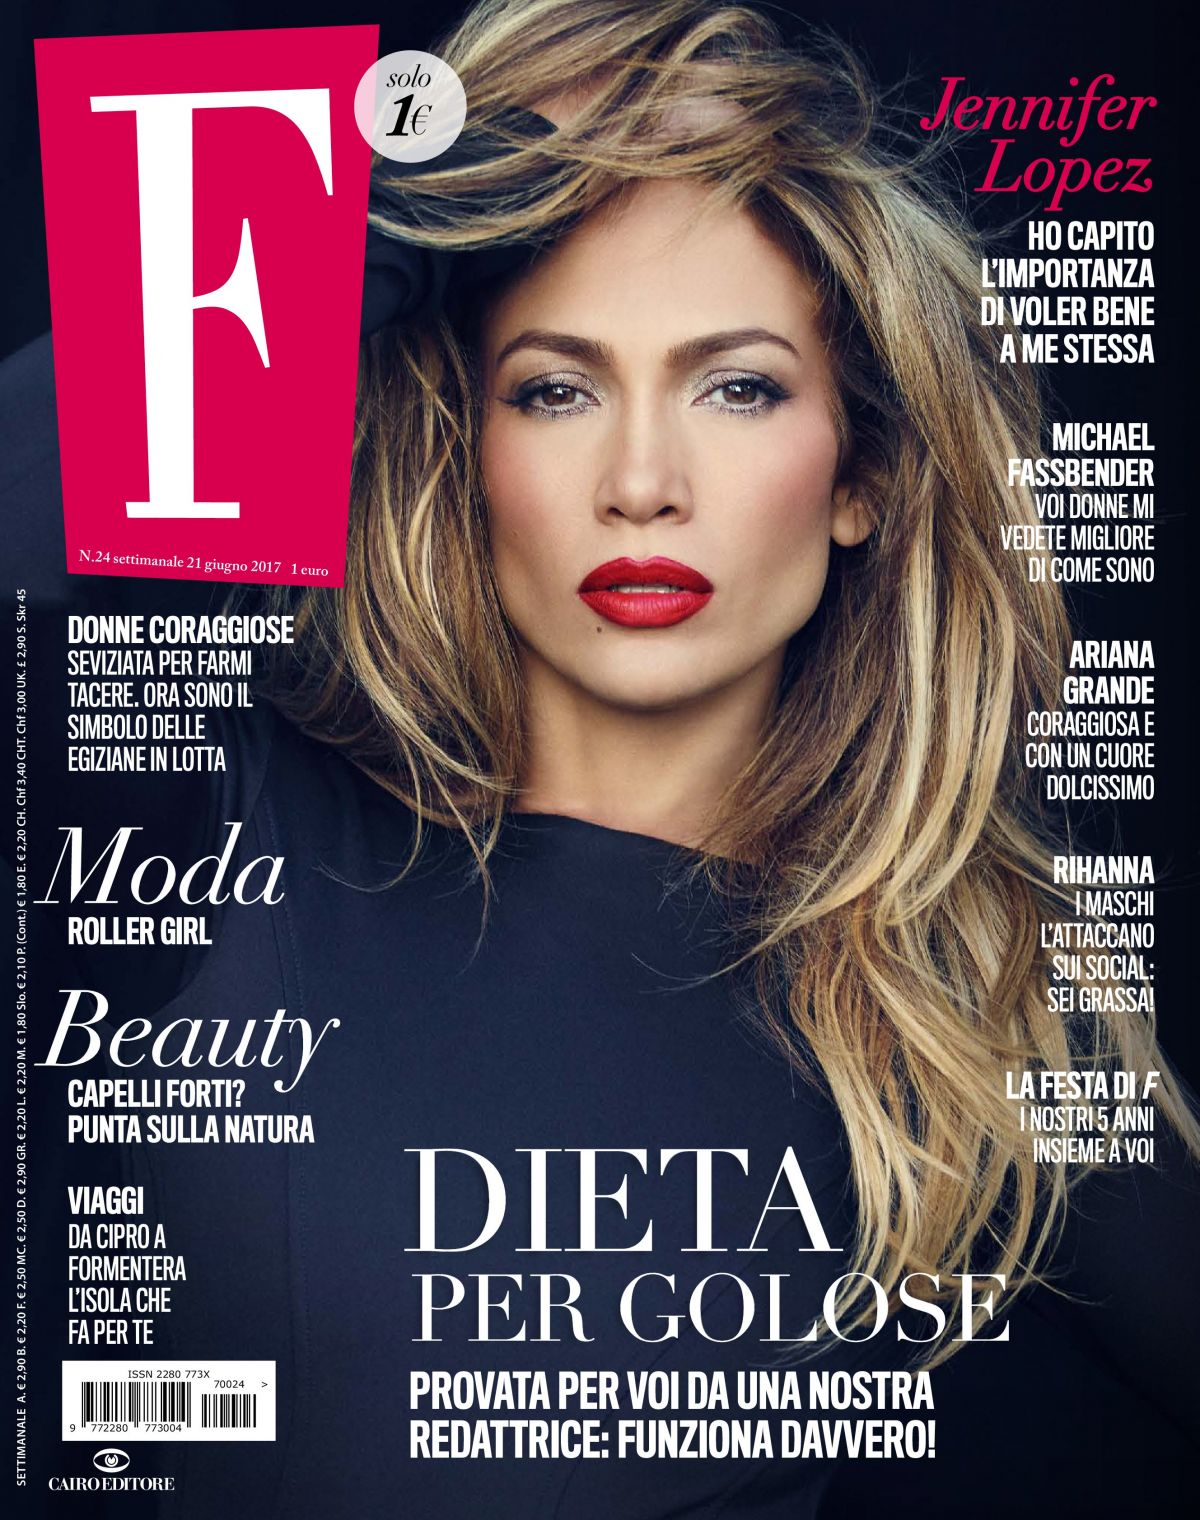 JENNIFER LOPEZ in F Magazine, Italy June 2017